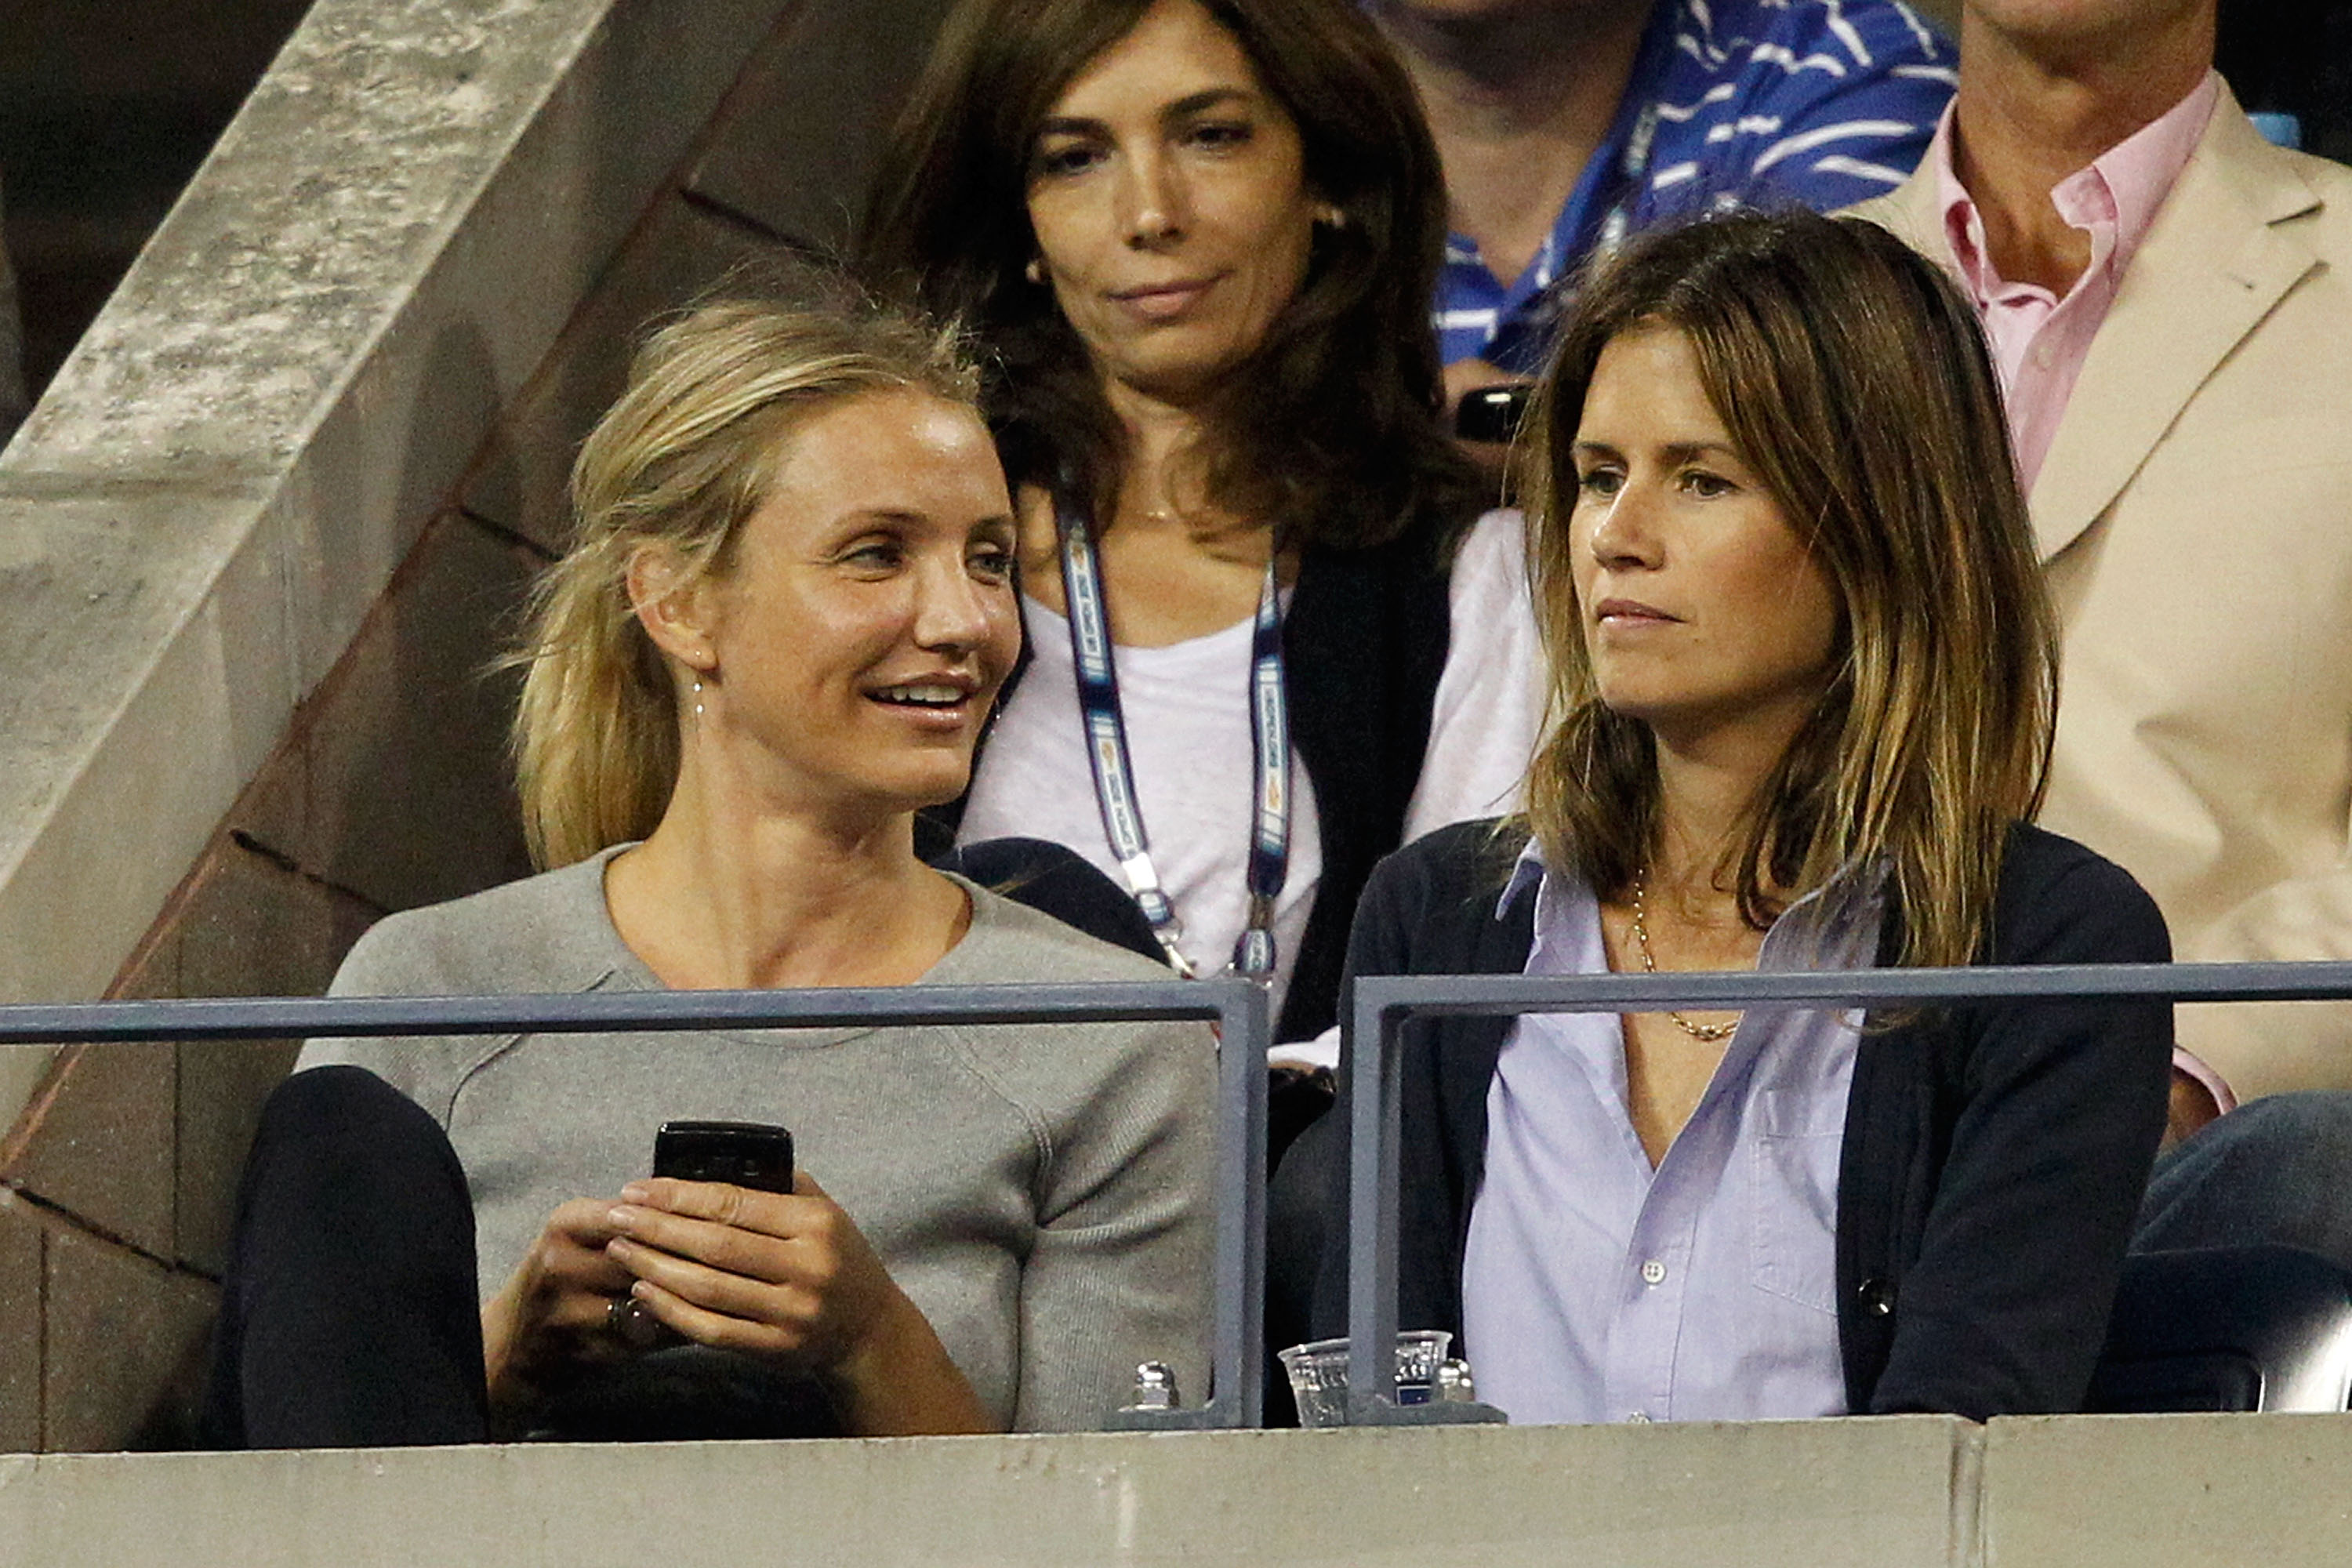 NEW YORK - SEPTEMBER 06:  Actor Cameron Diaz watches Roger Federer of Switzerland play against Jurgen Melzer of Austria during day eight of the 2010 U.S. Open at the USTA Billie Jean King National Tennis Center on September 6, 2010 in the Flushing neighbo